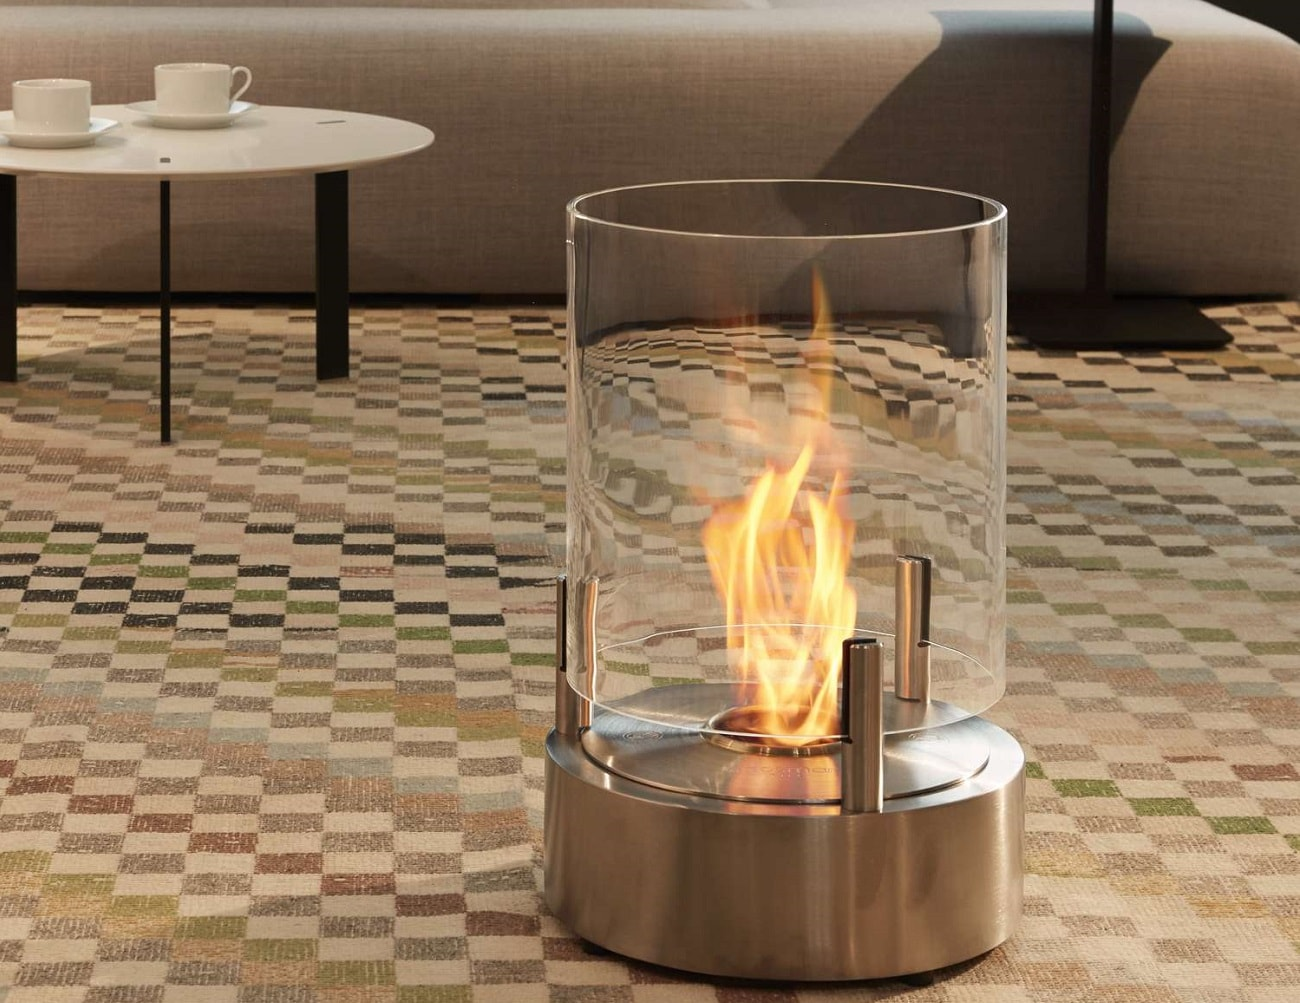 Cyl Outdoor Fireplace by EcoSmart Fire ...